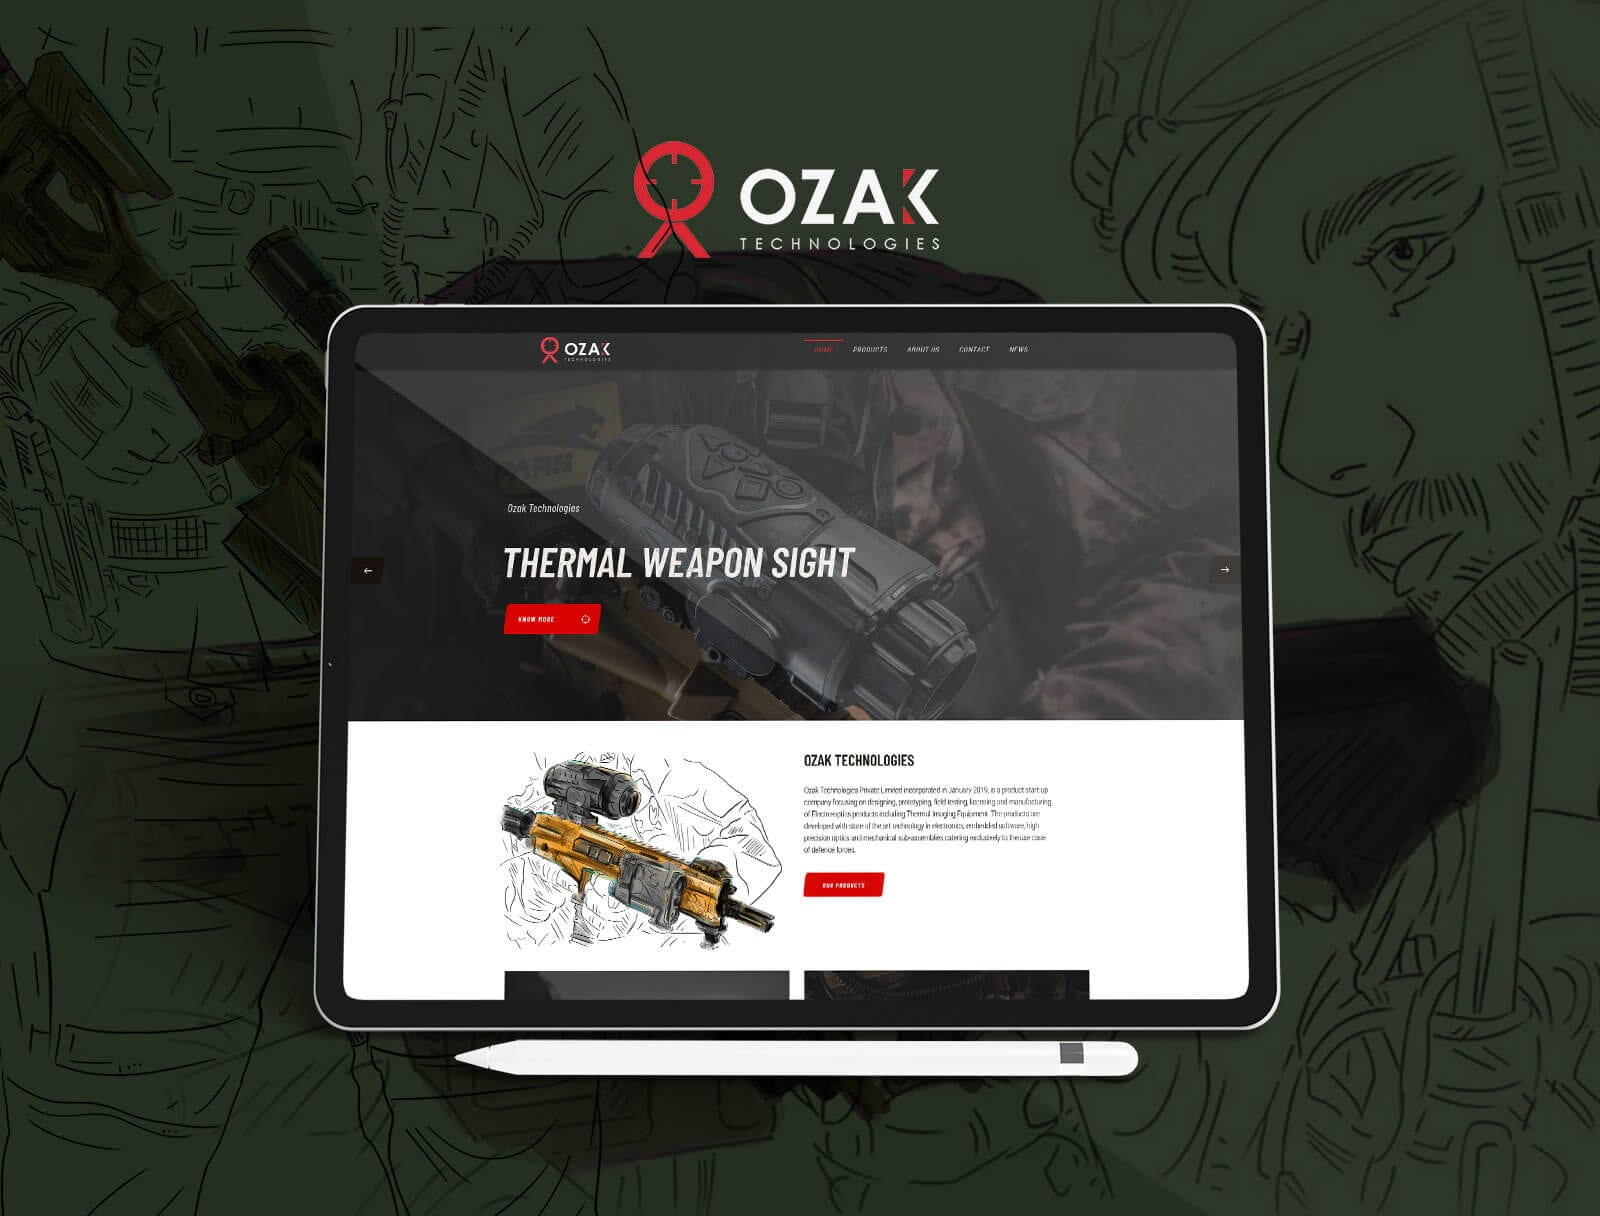 OZAK Technologies - Web Designed by The Inventiv Hub